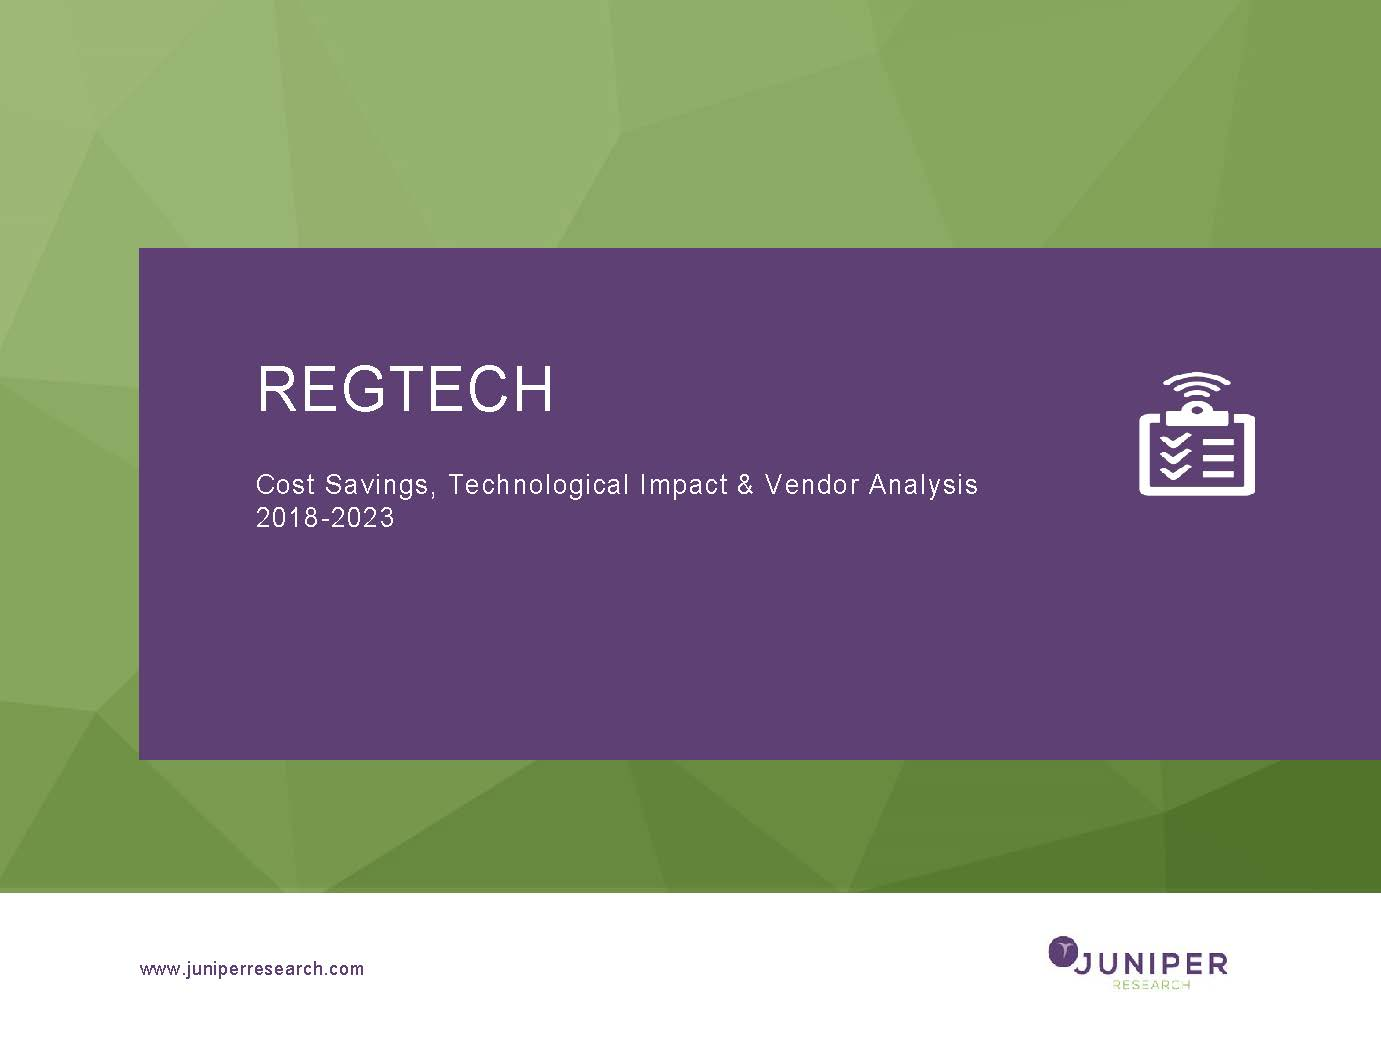 Regtech: Cost Savings, Technological Impact & Vendor Analysis 2018-2023 Full Research Suite